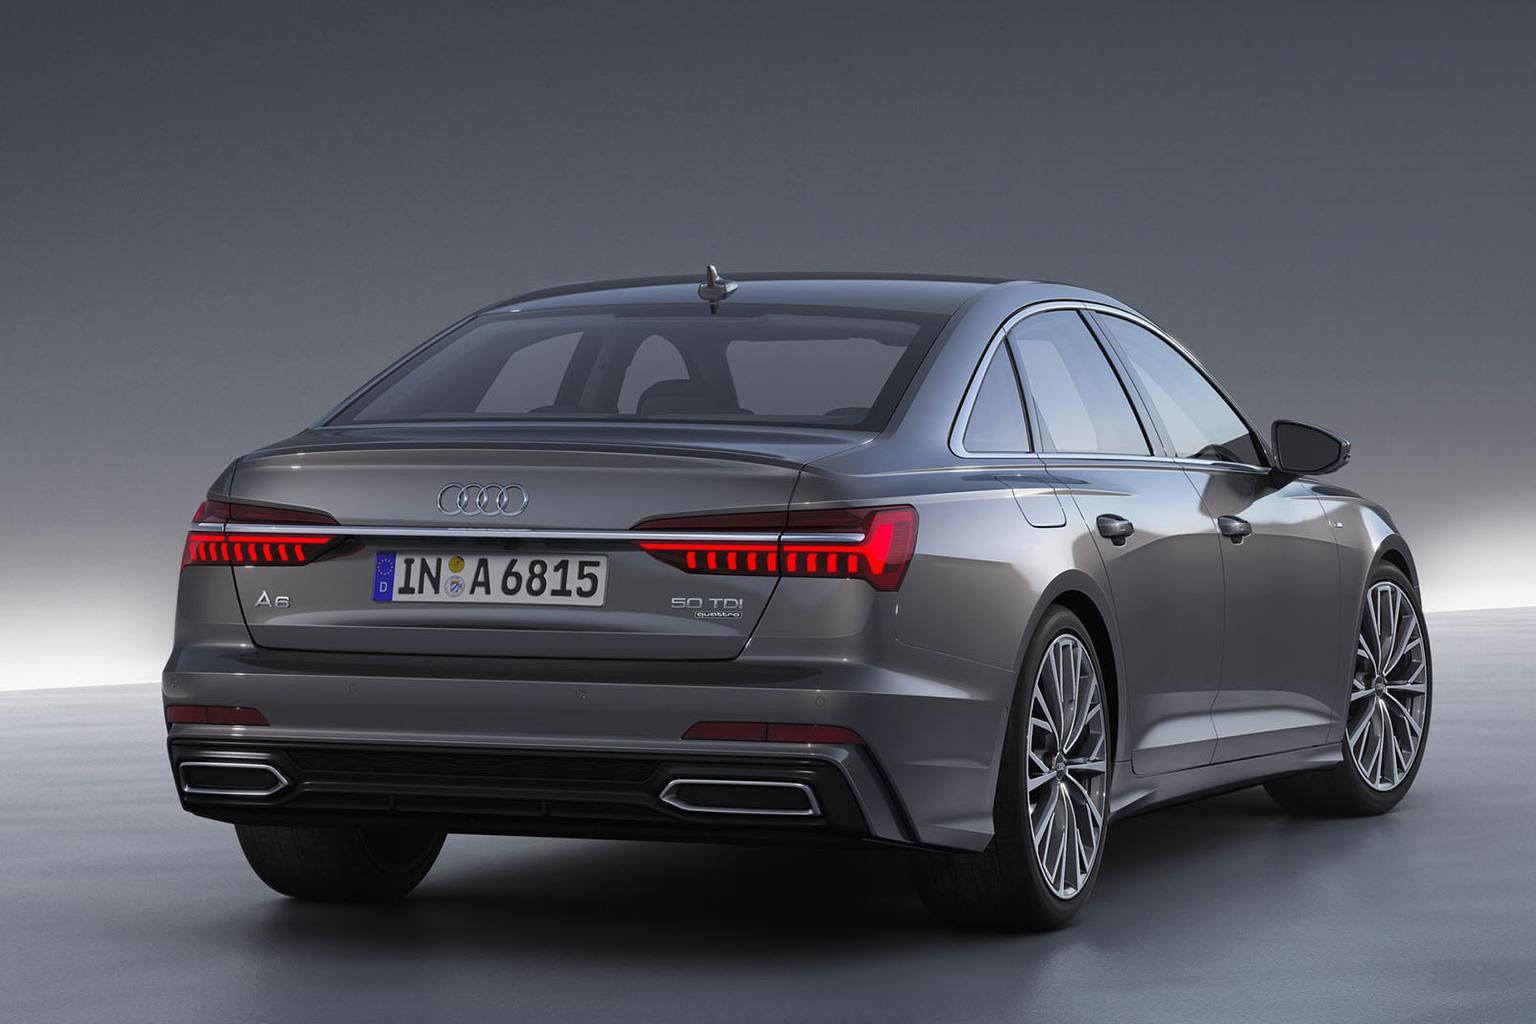 2018 Audi A6 – price, specs and release date